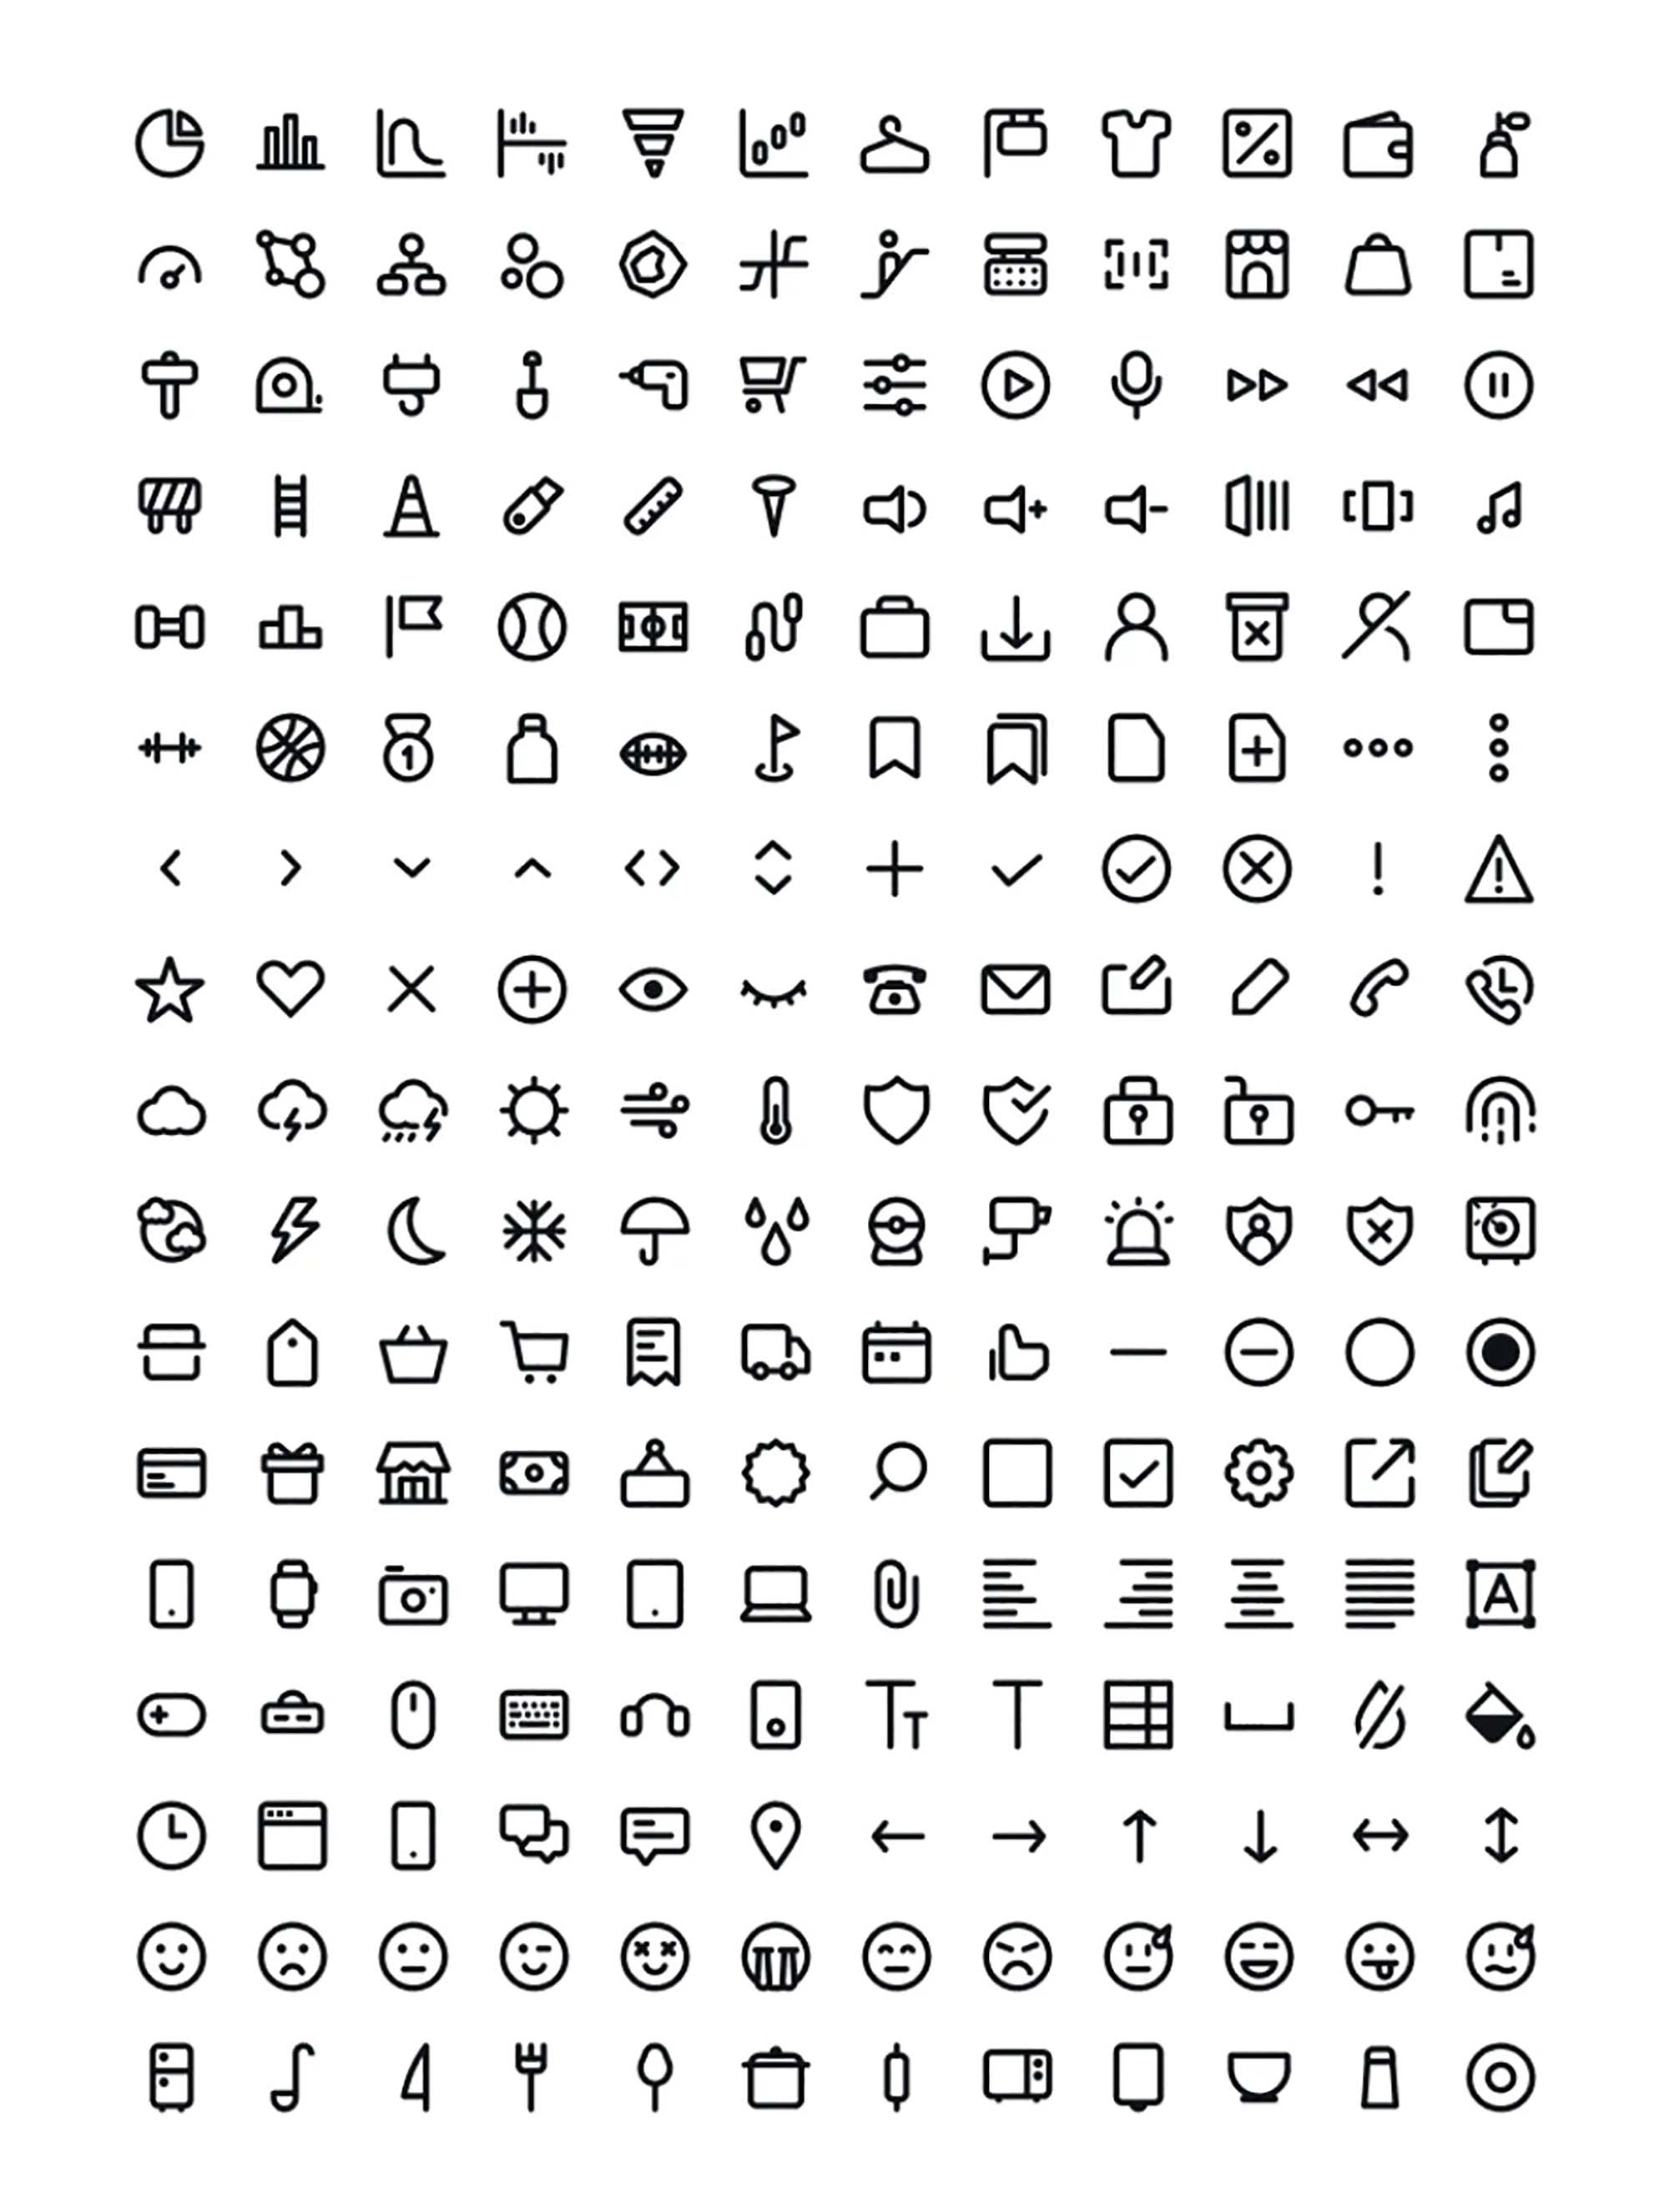 240 Line Vector Icons